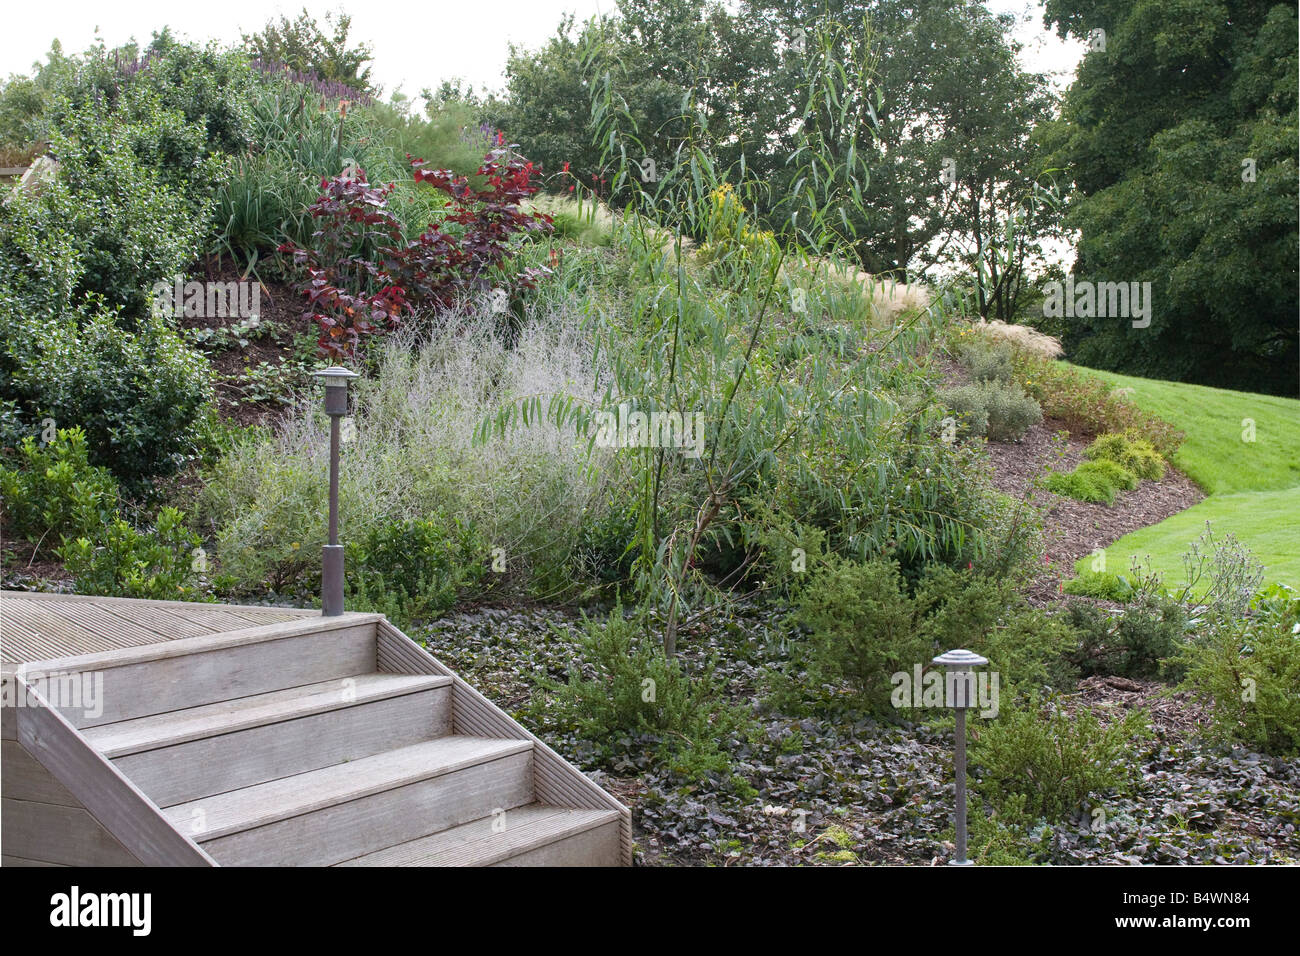 Green oak garden steps with garden lights. Herbaceous border by lawned area. - Stock Image